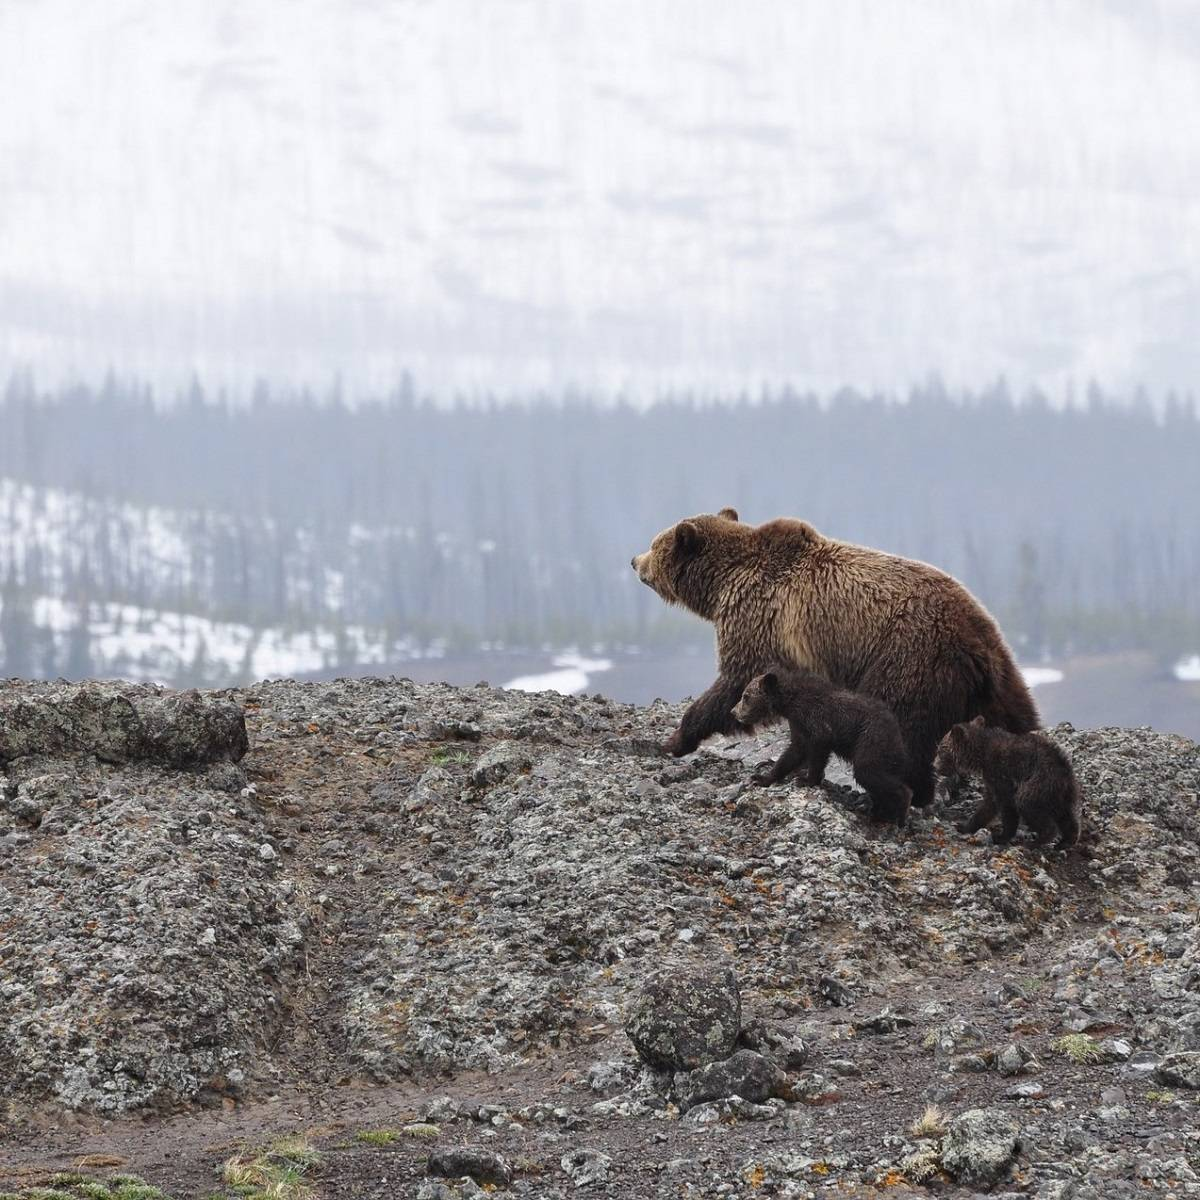 A European brown bear with her two cubs on a rocky hill